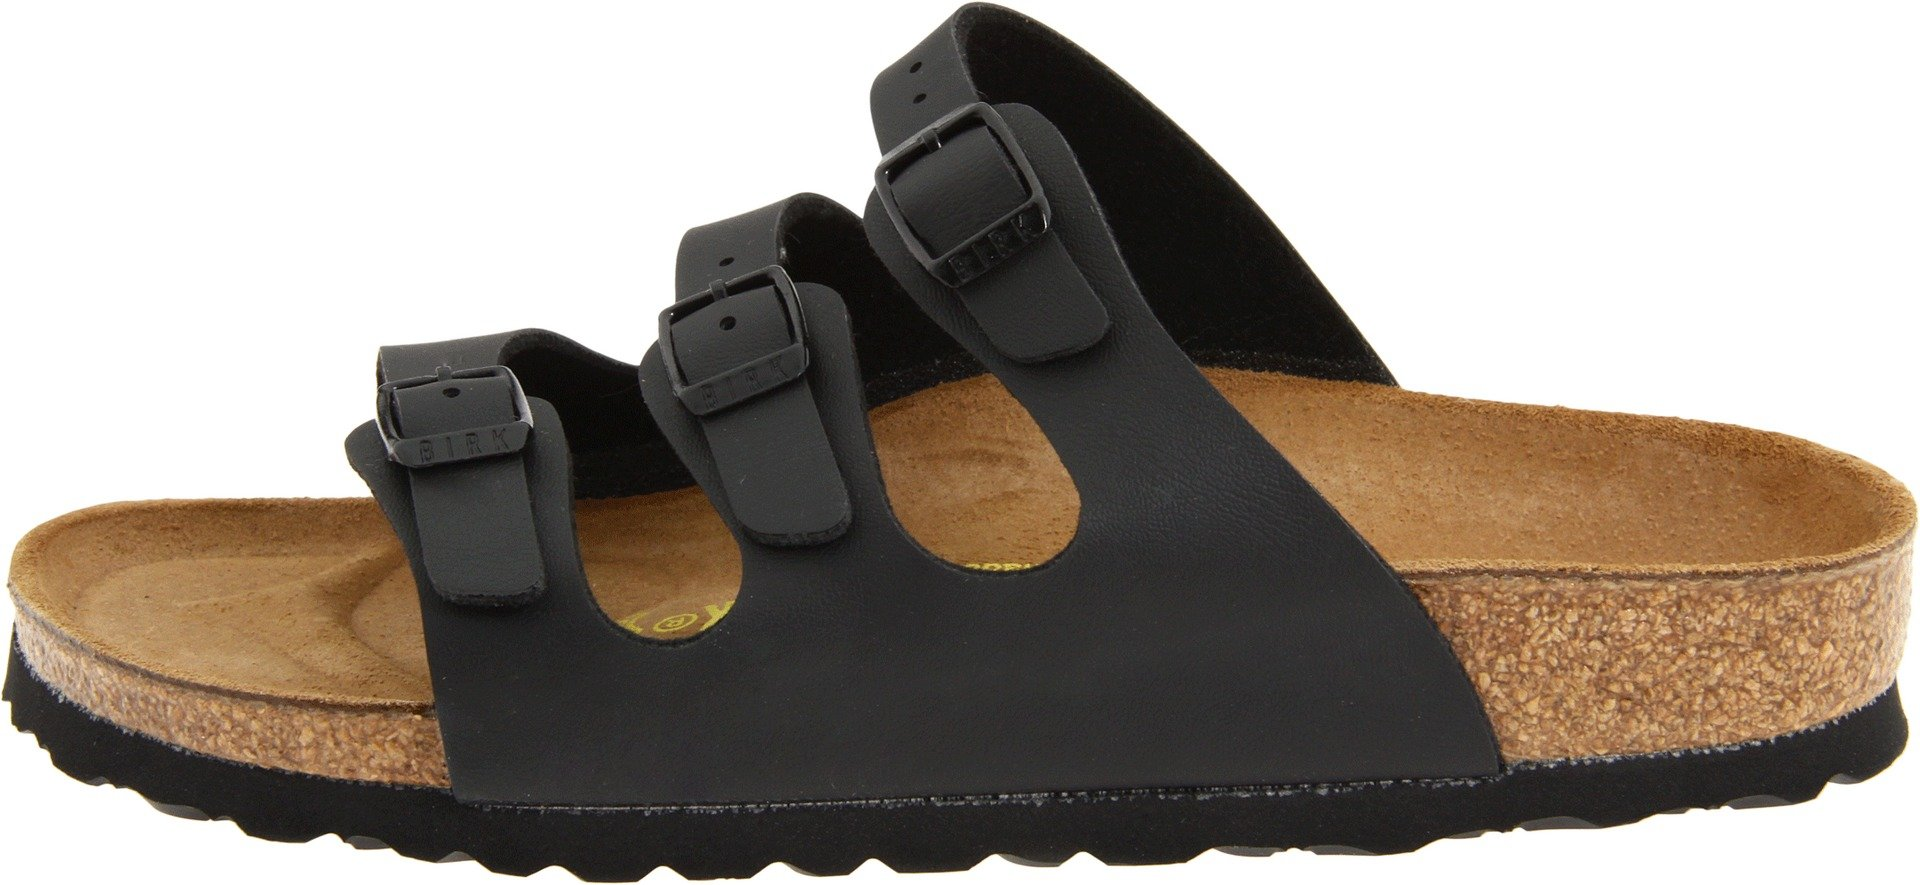 Birkenstock Women's Florida Sandals,Black,38 N EU / 7-7.5 AA(N) US by Birkenstock (Image #5)